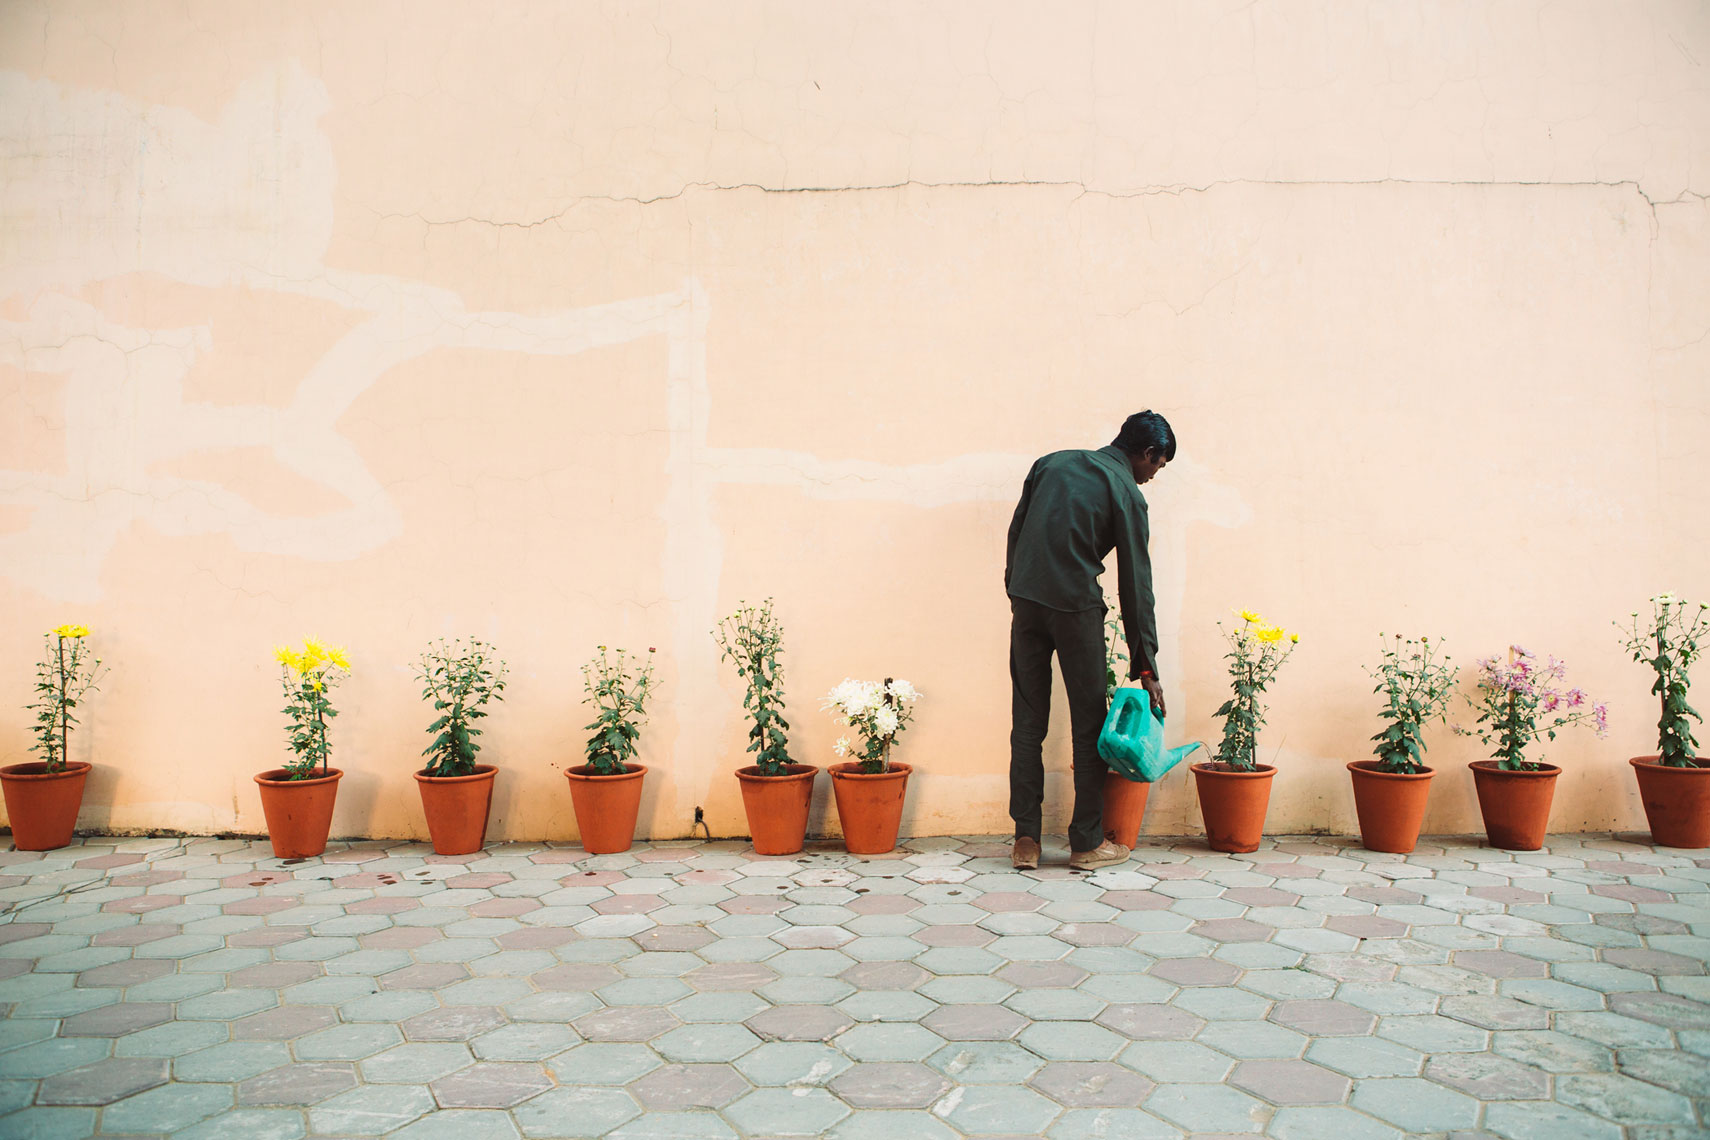 deepi-ahluwalia-india-jaipur-water-plants